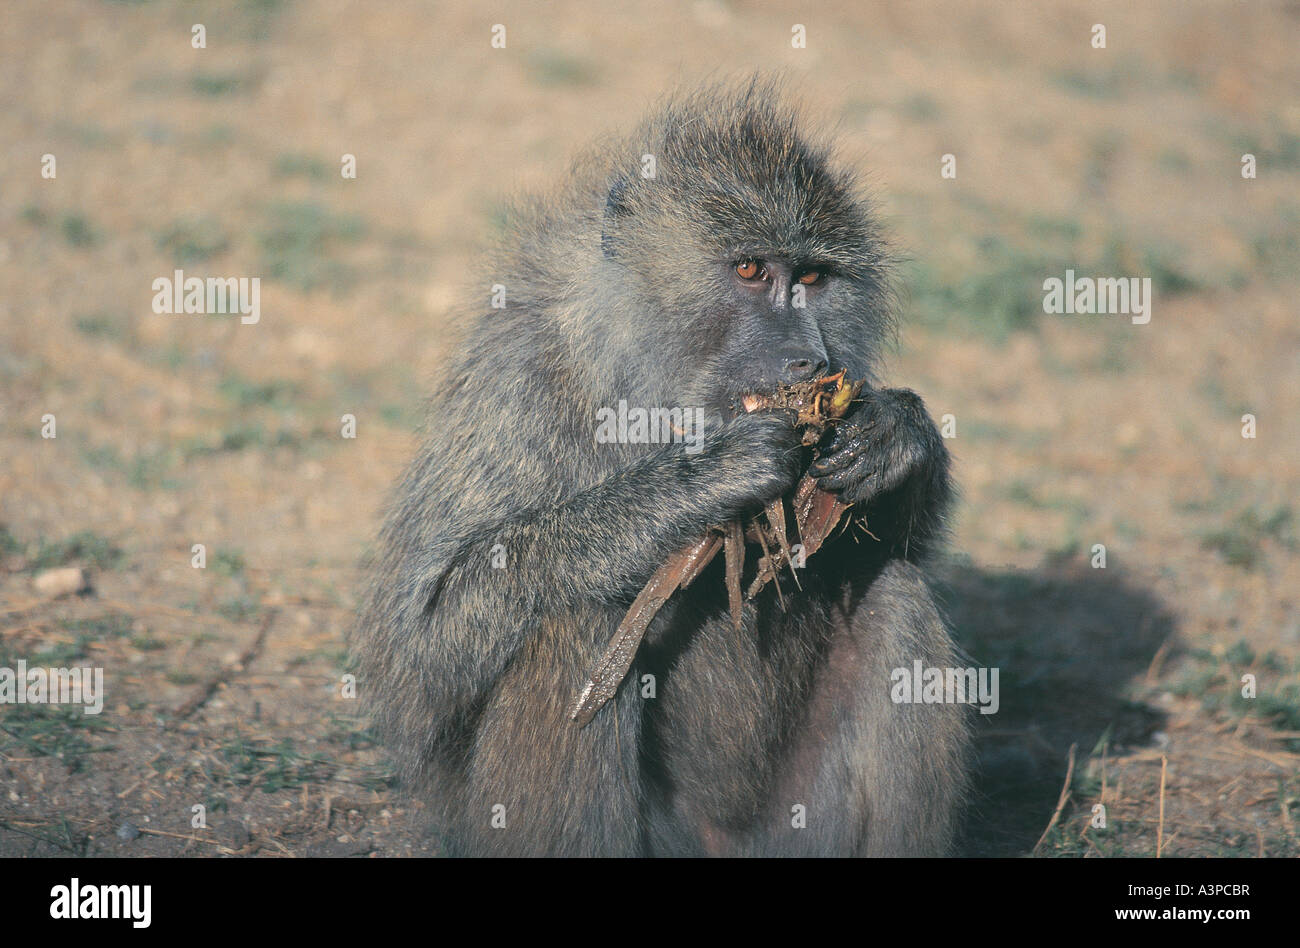 Olive Baboon eating roots from a pool in Serengeti National Park Tanzania - Stock Image